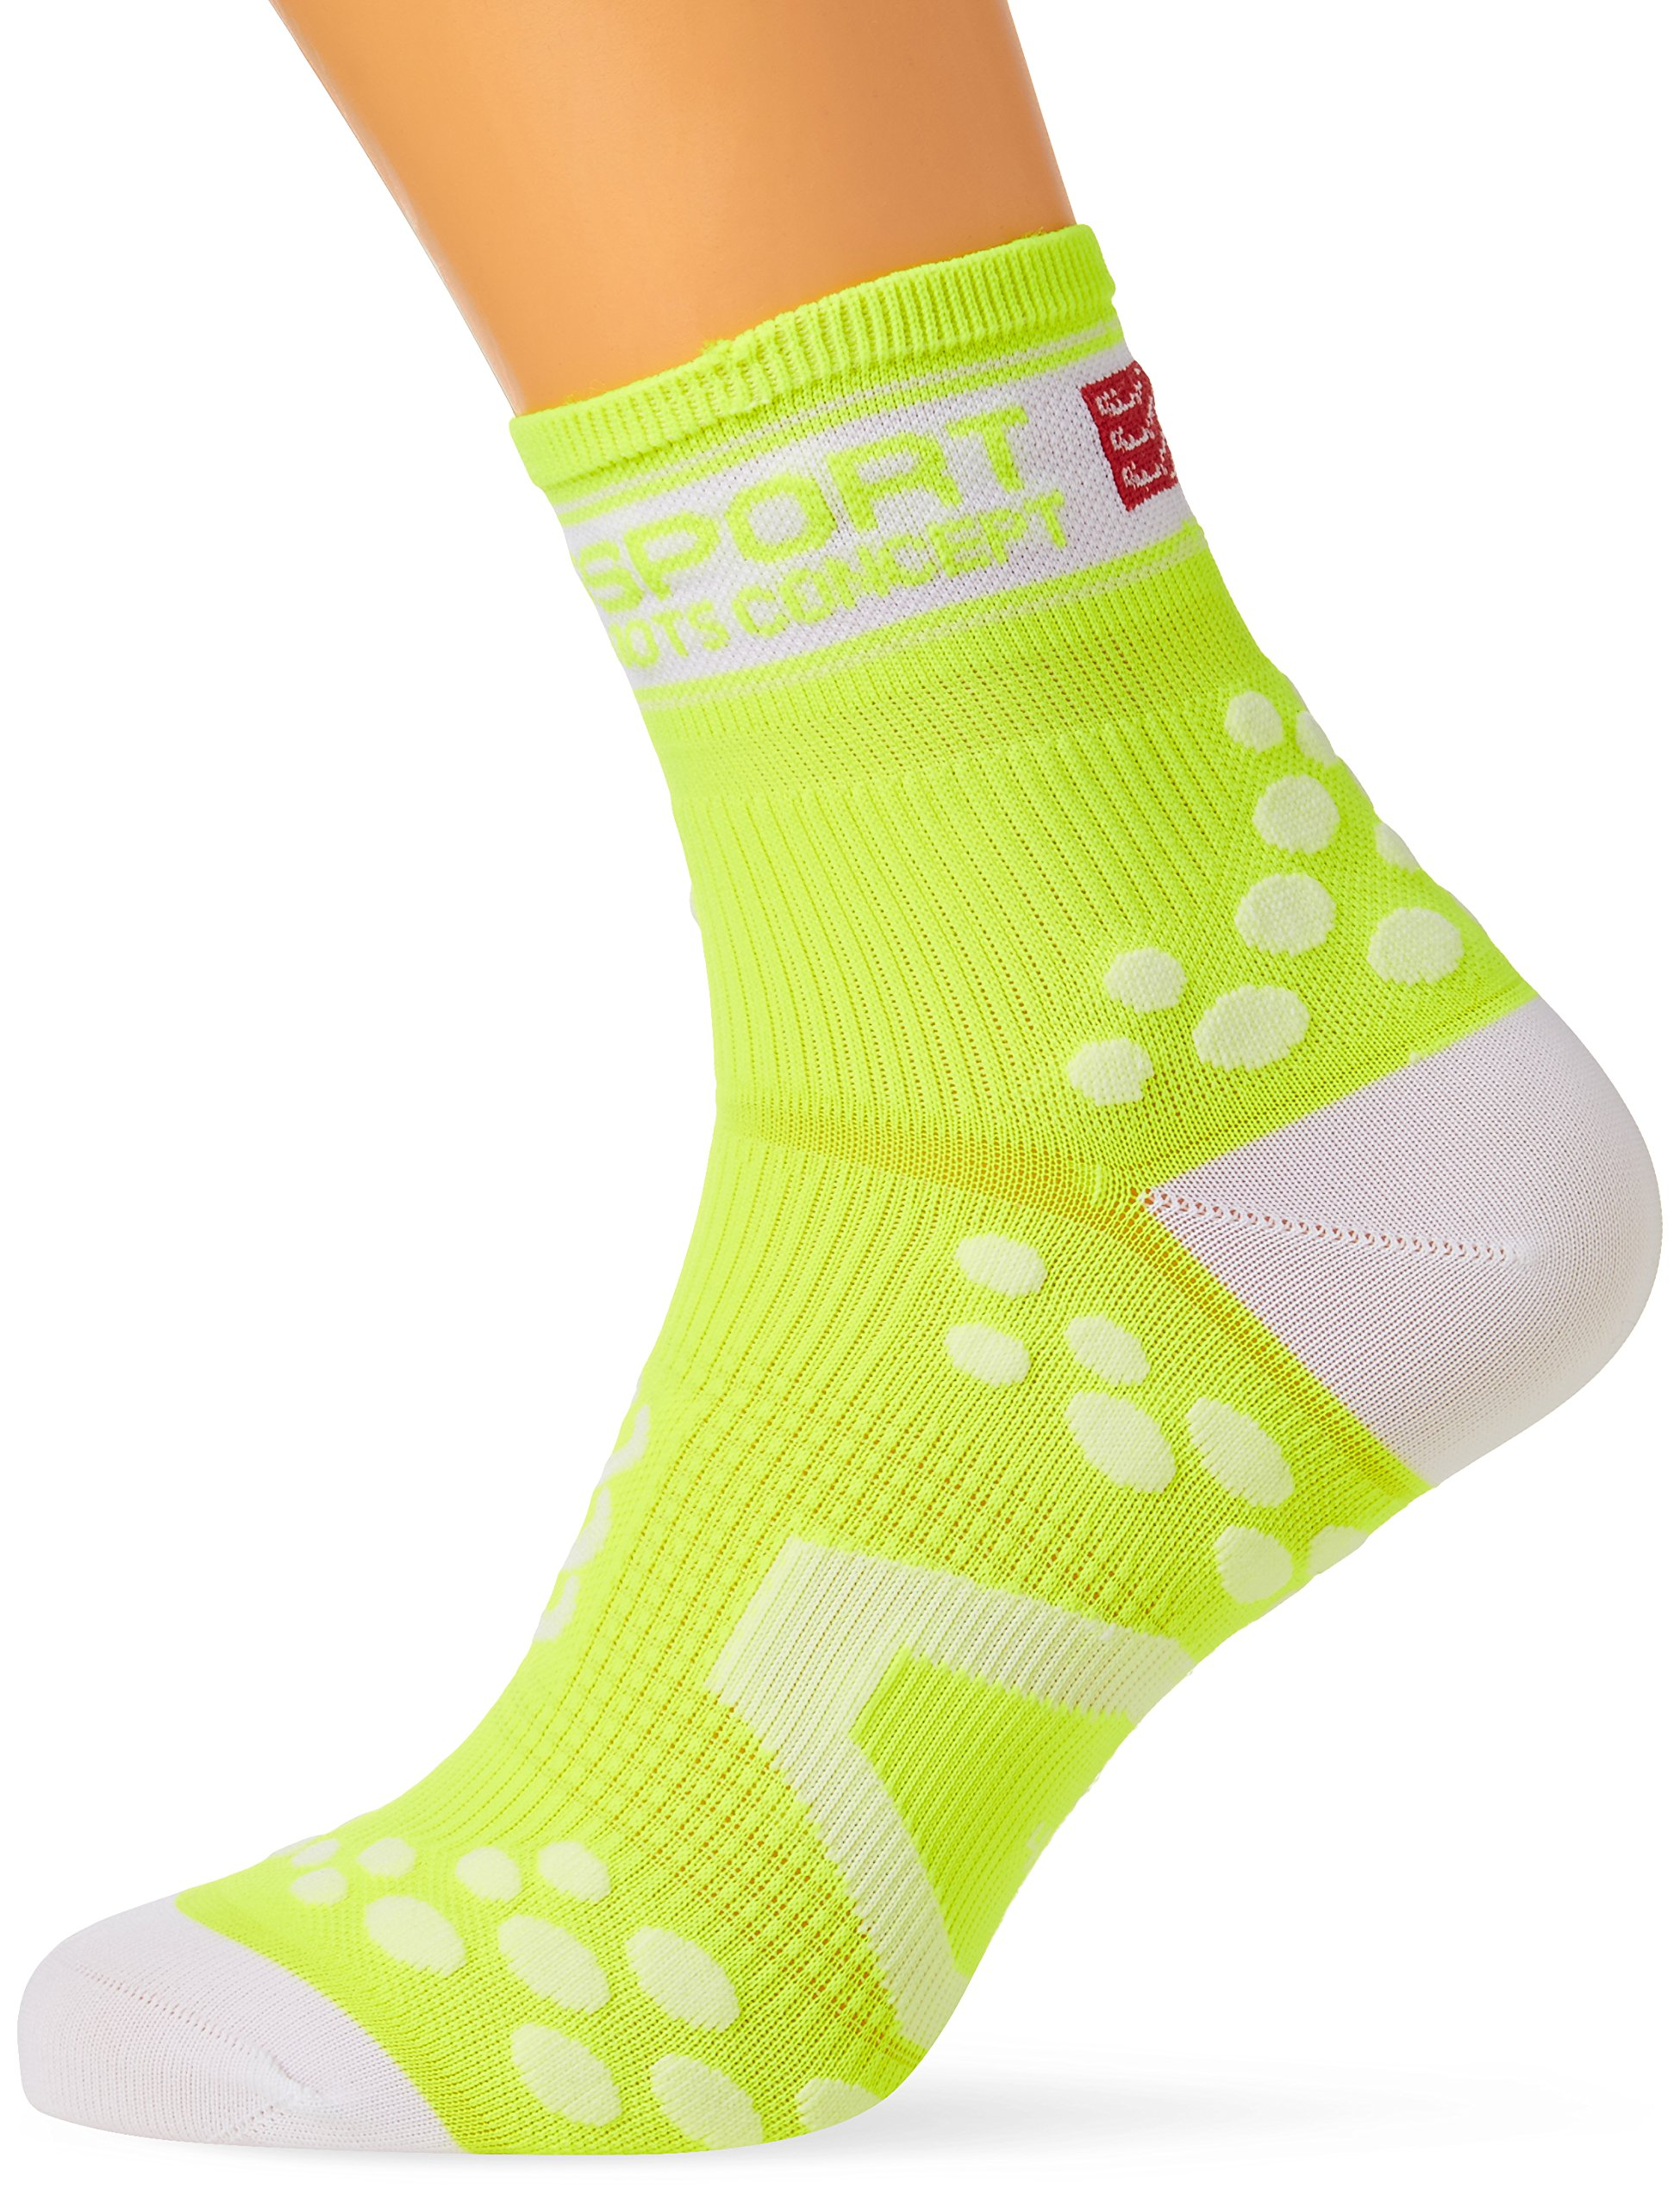 Compressport Pro Racing V2 Run Hi Calcetines, Unisex Adulto, Amarillo/Blanco, 37